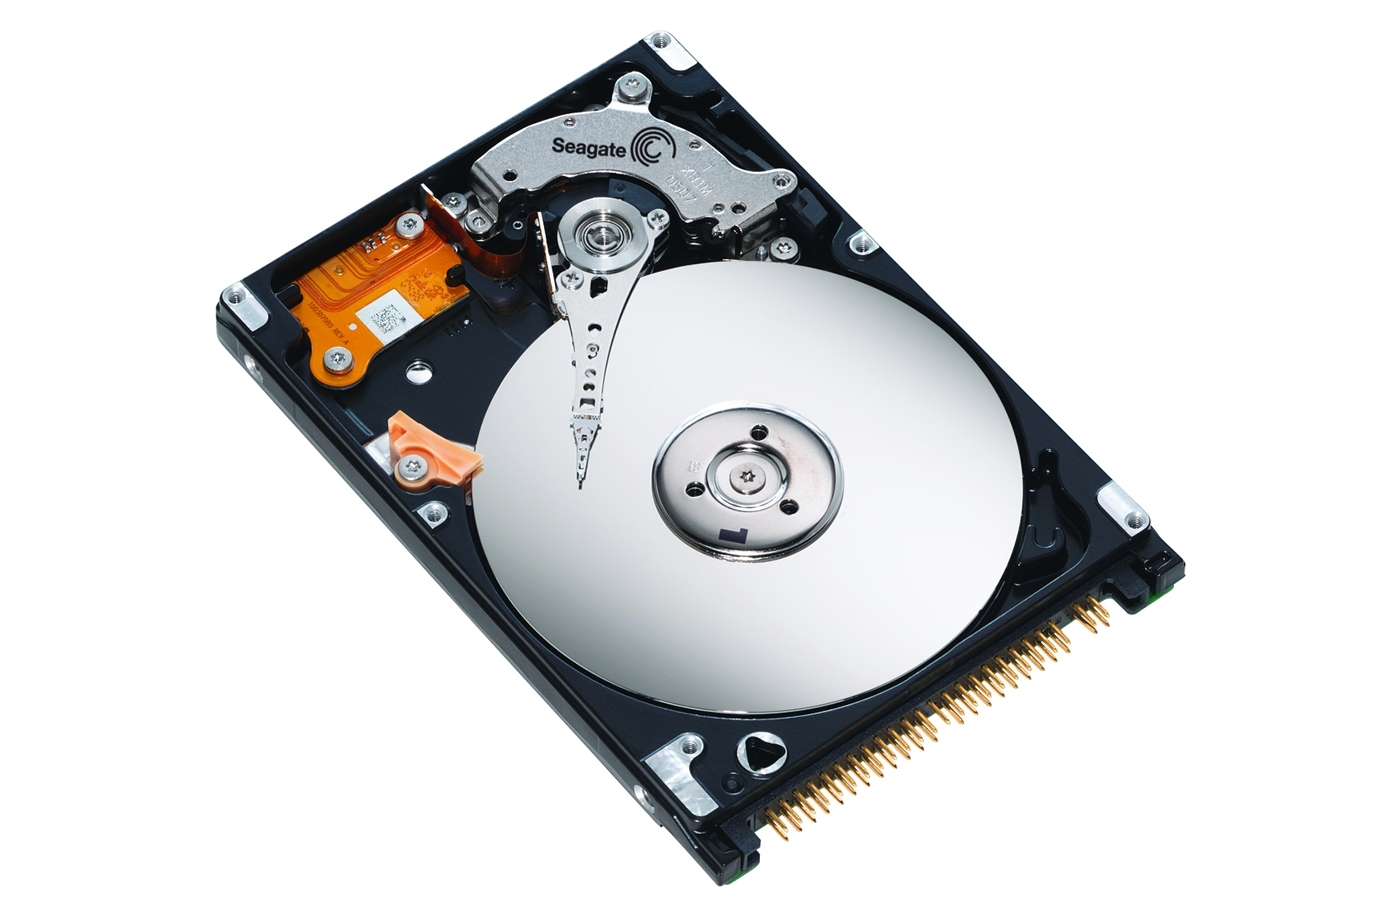 Seagate Momentus 5400 3 Review: - Servers & Storage - Hard